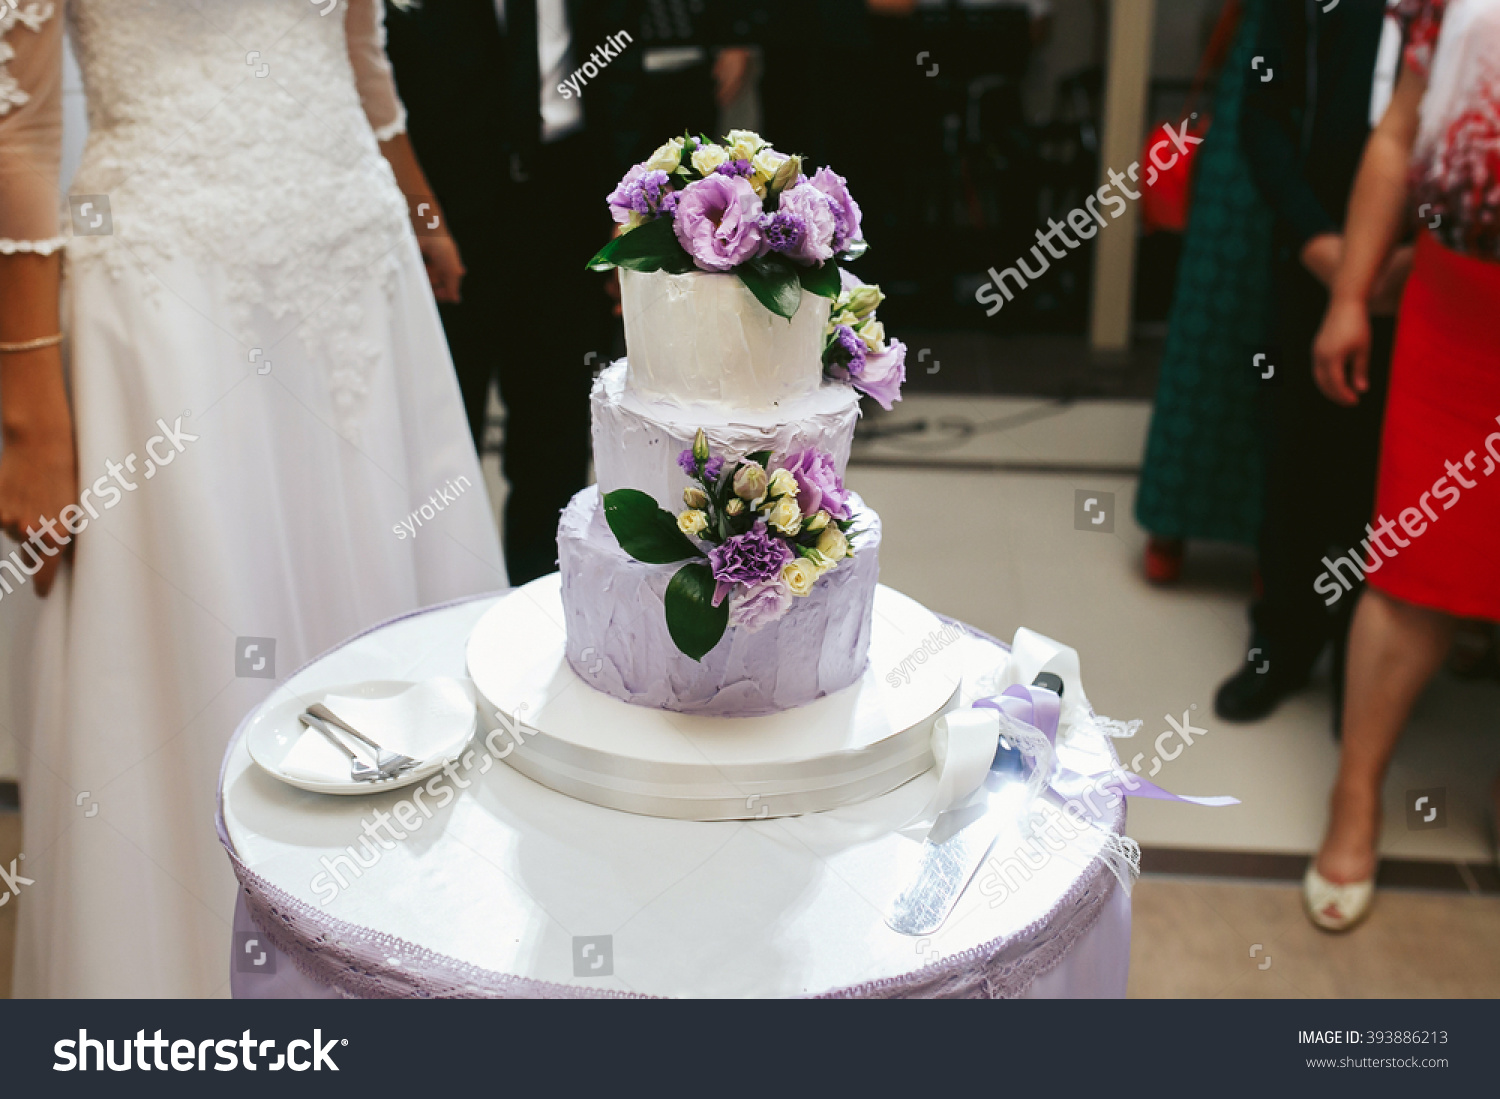 Delicious White Wedding Cake Purple Flowers Stock Photo Edit Now